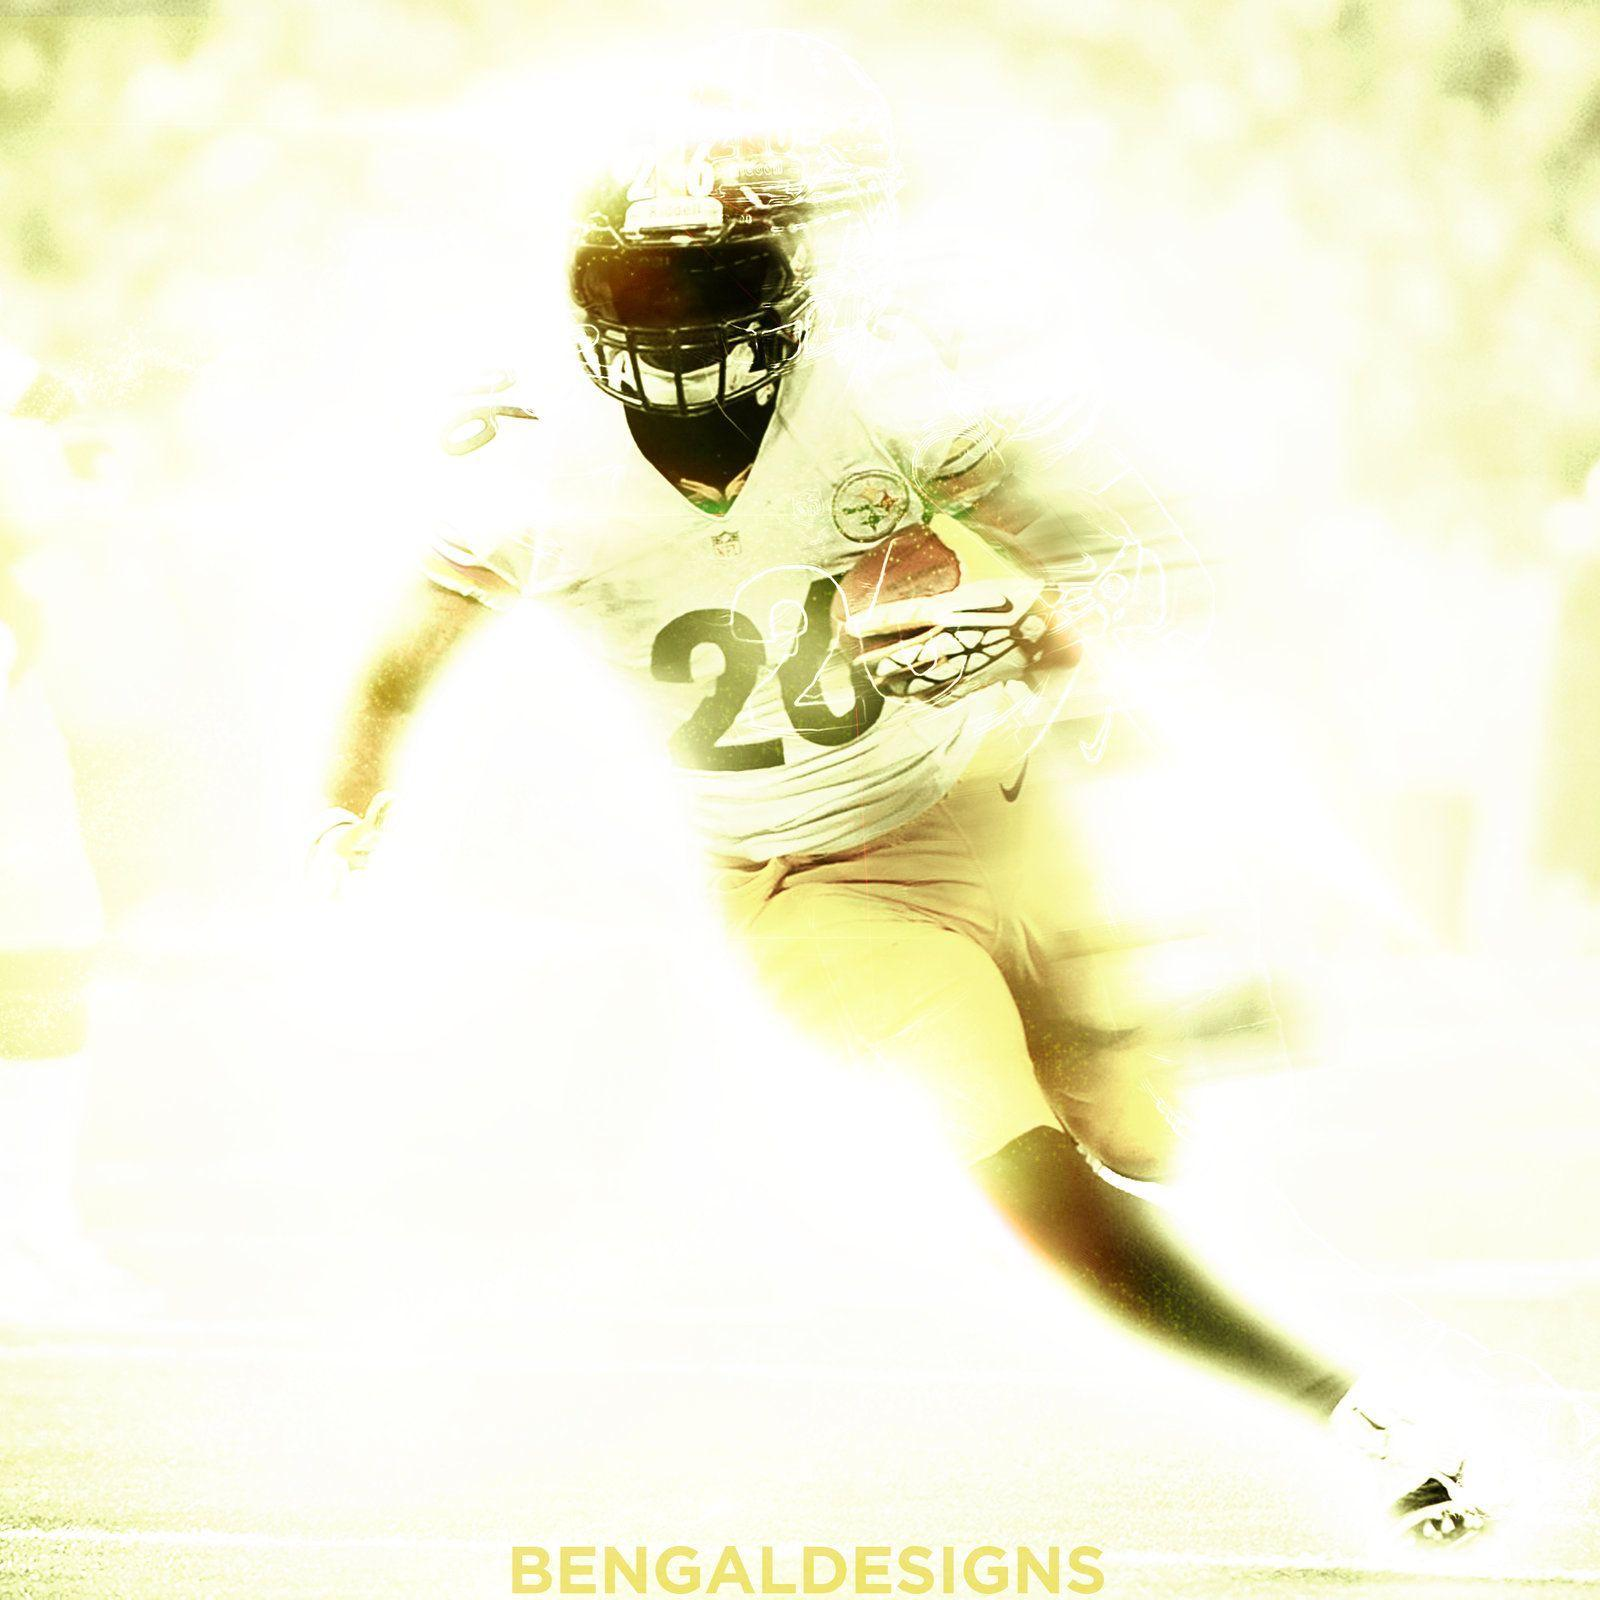 Le'Veon Bell Wallpaper by BengalDesigns by bengalbro on DeviantArt